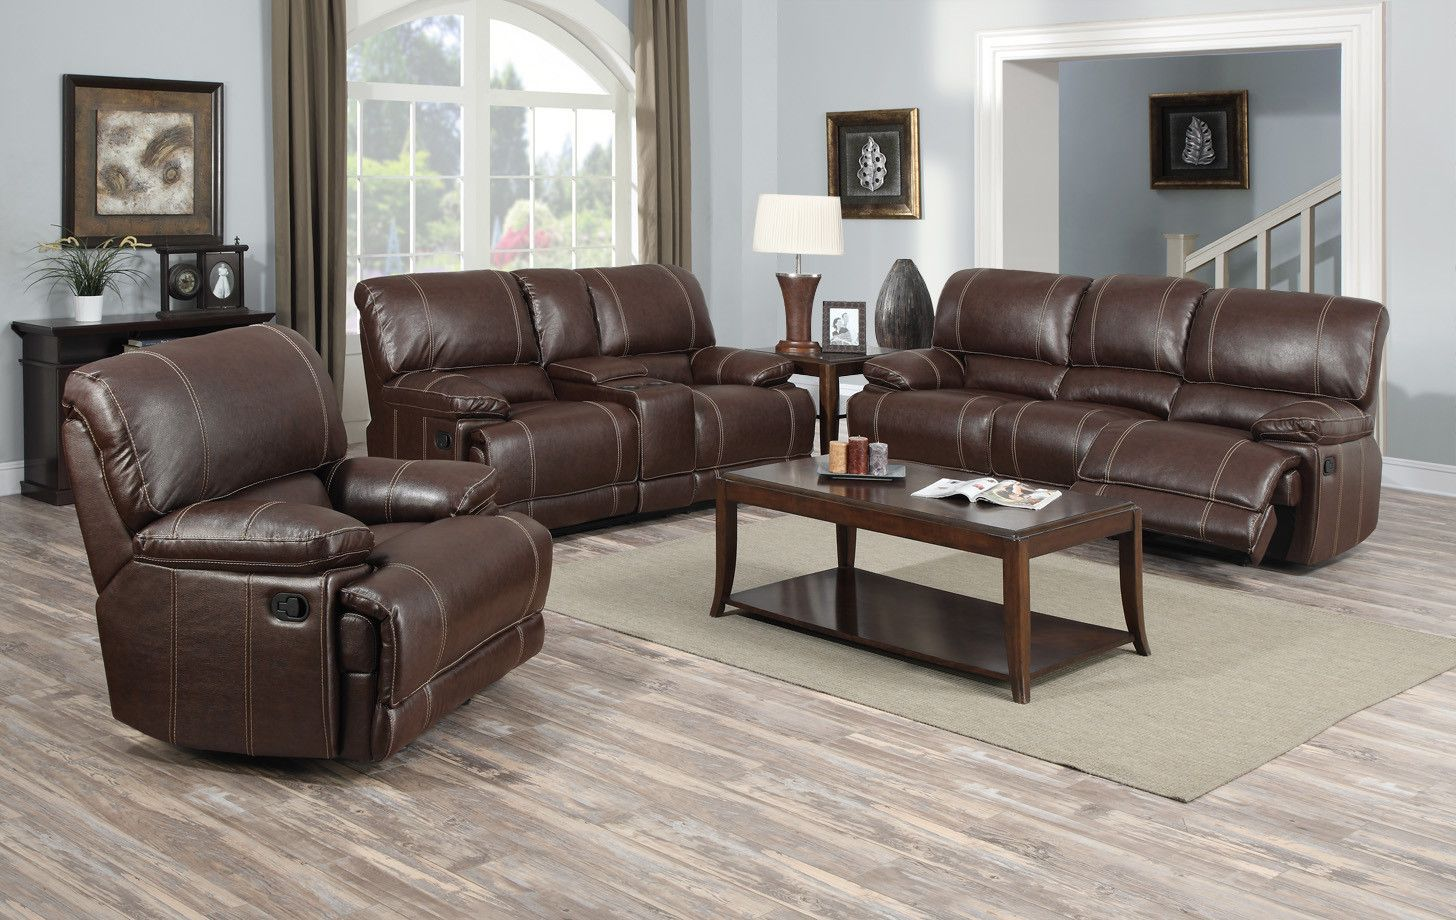 Best 1560 The Contemporary Living Room Set Cocoa Products 400 x 300